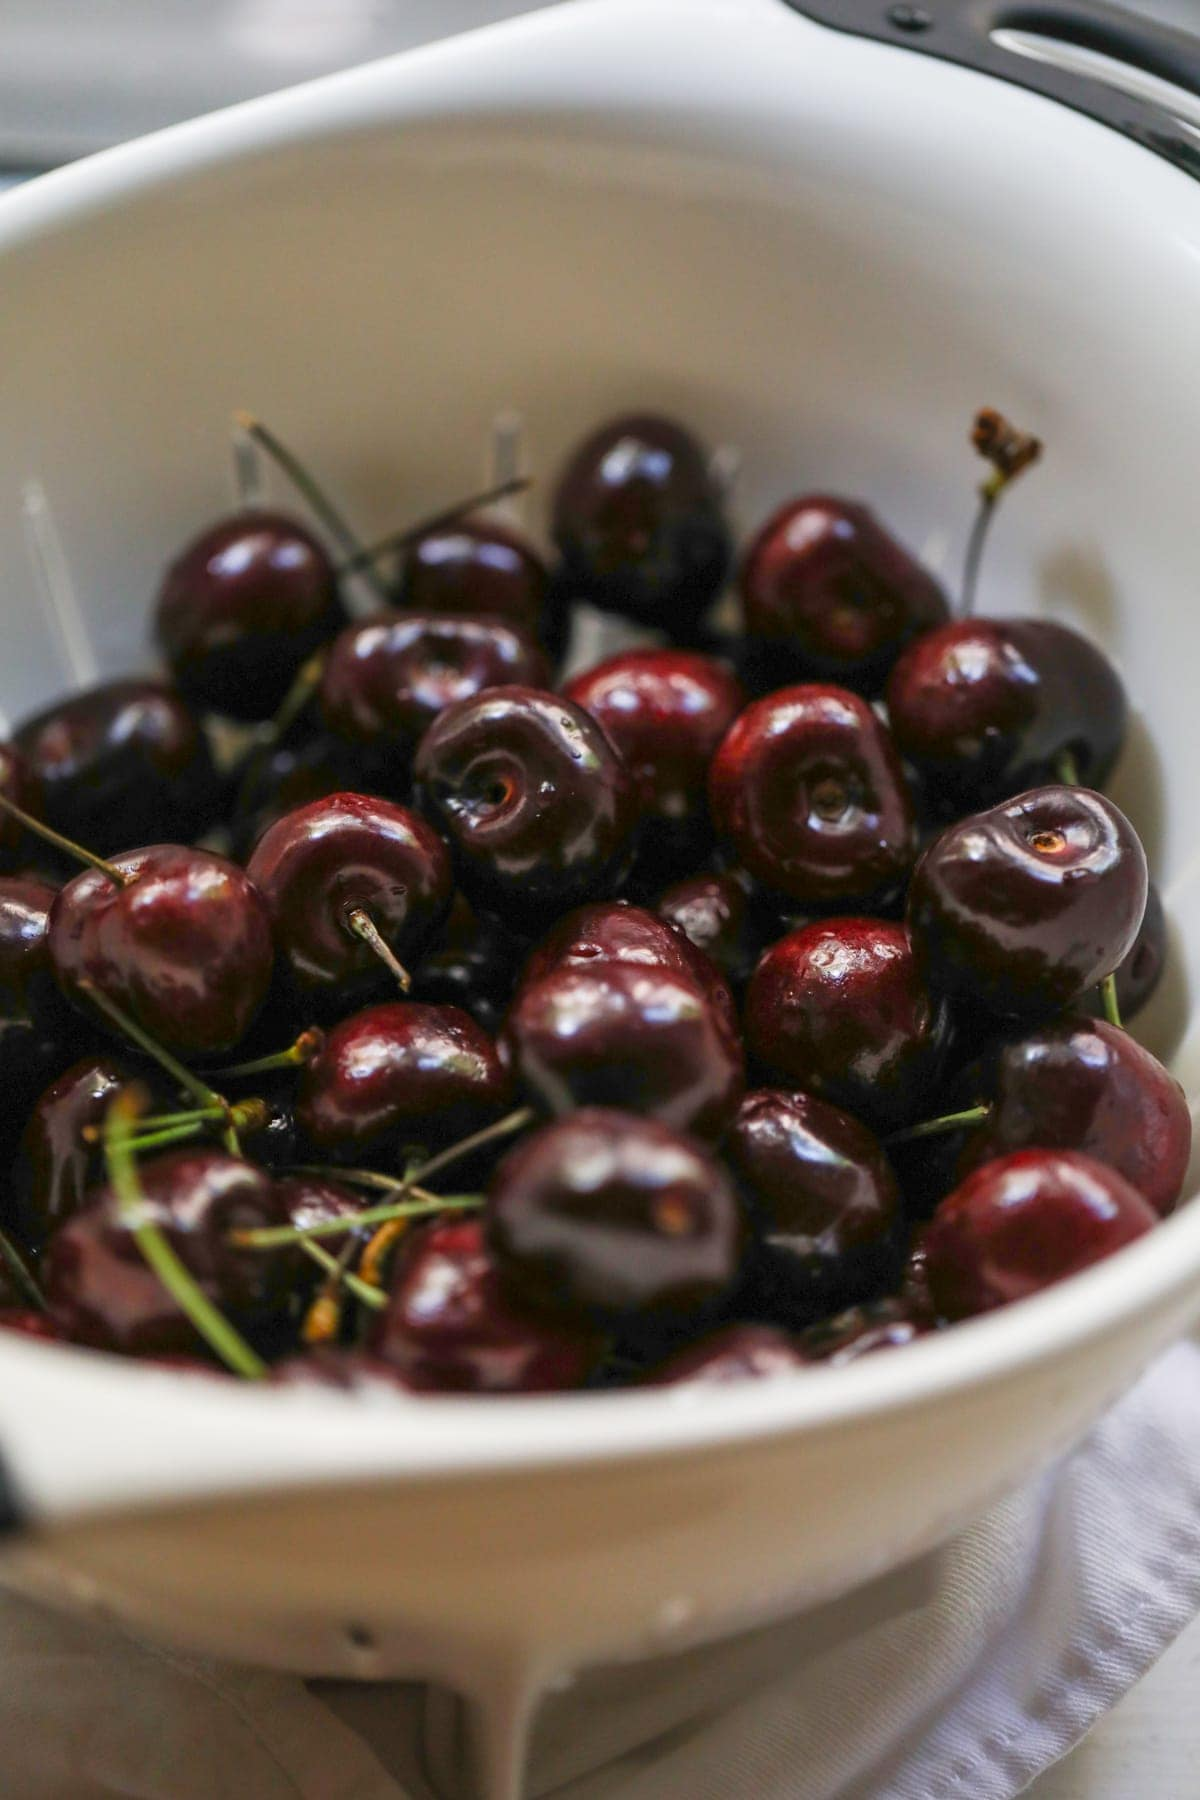 A close up of a bowl of cherries